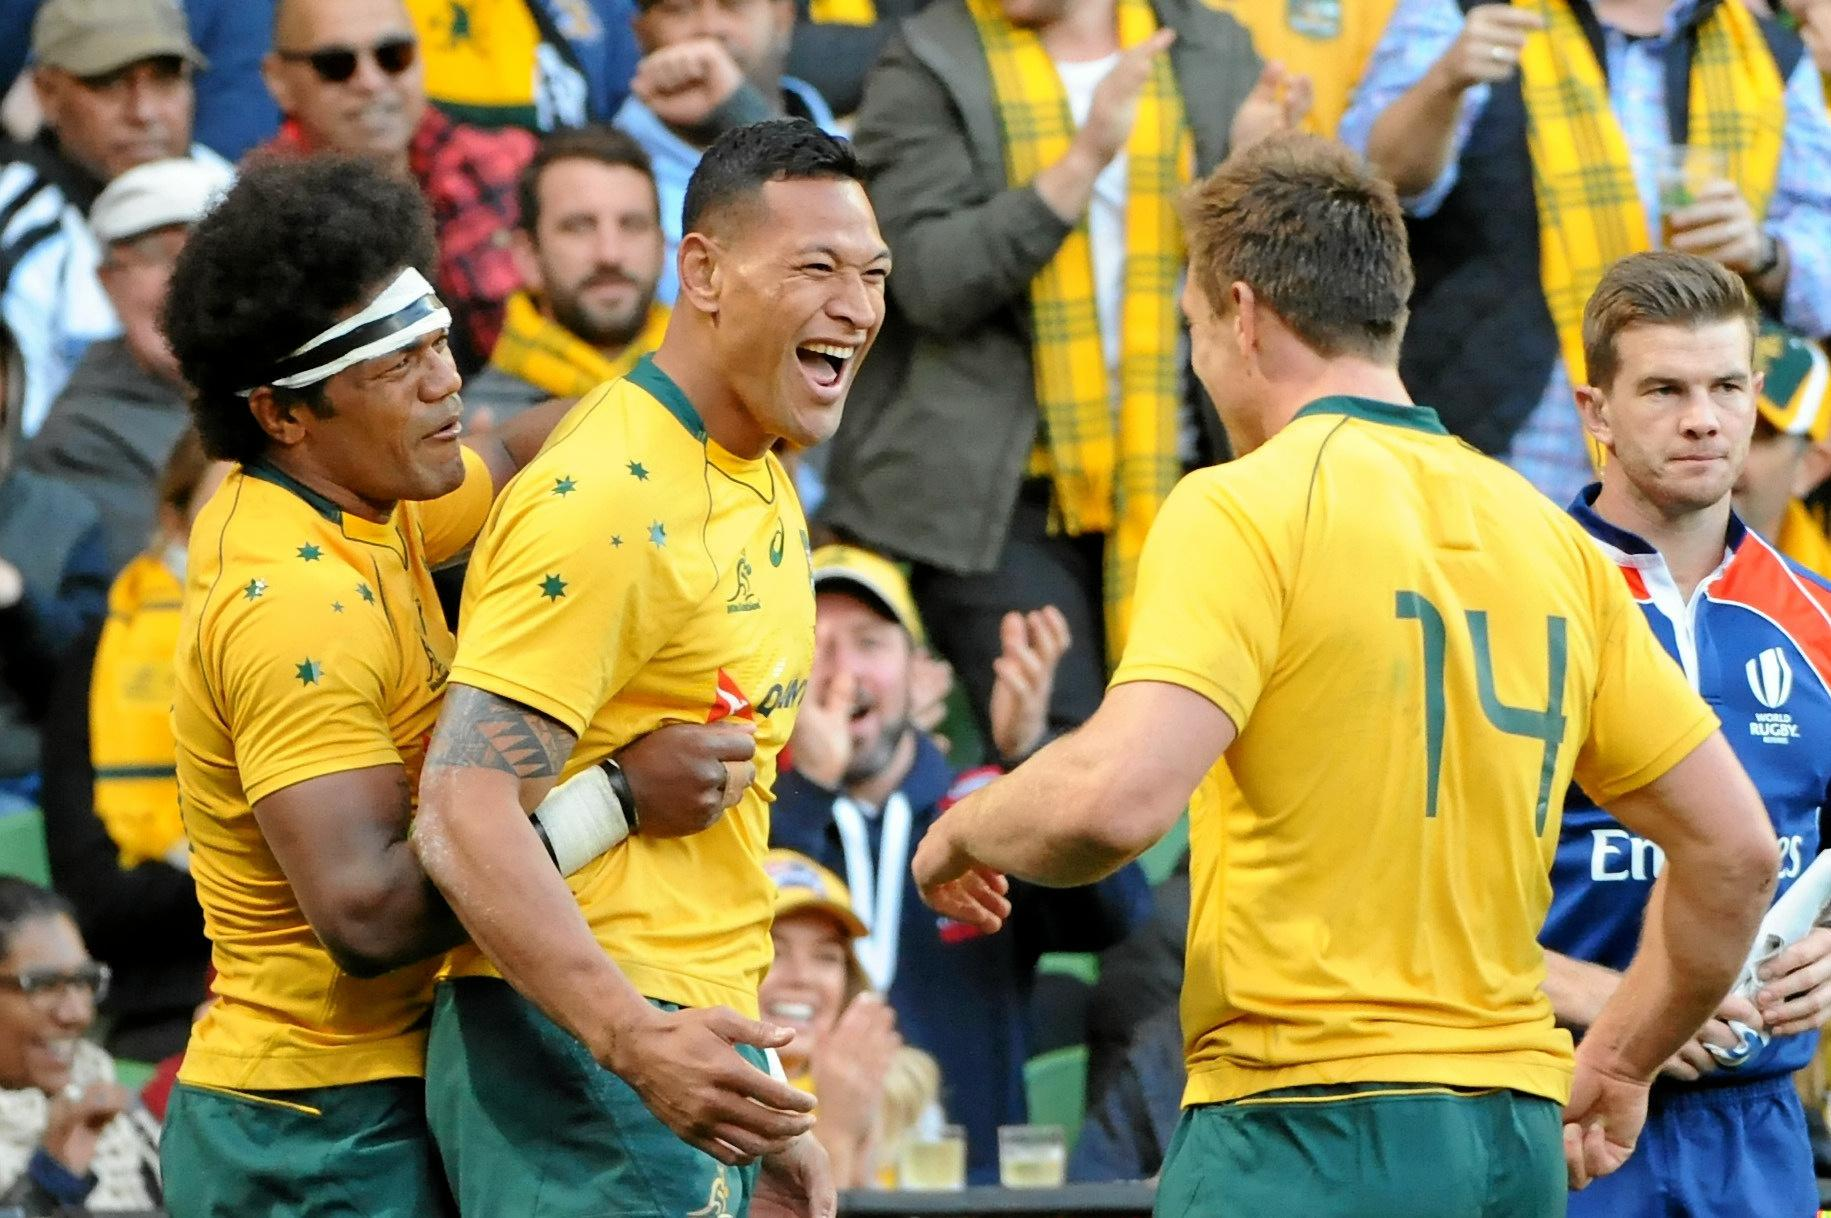 Israel Folau of the Wallabies (centre) celebrates with teammates after he scored his side's third try against Fiji.